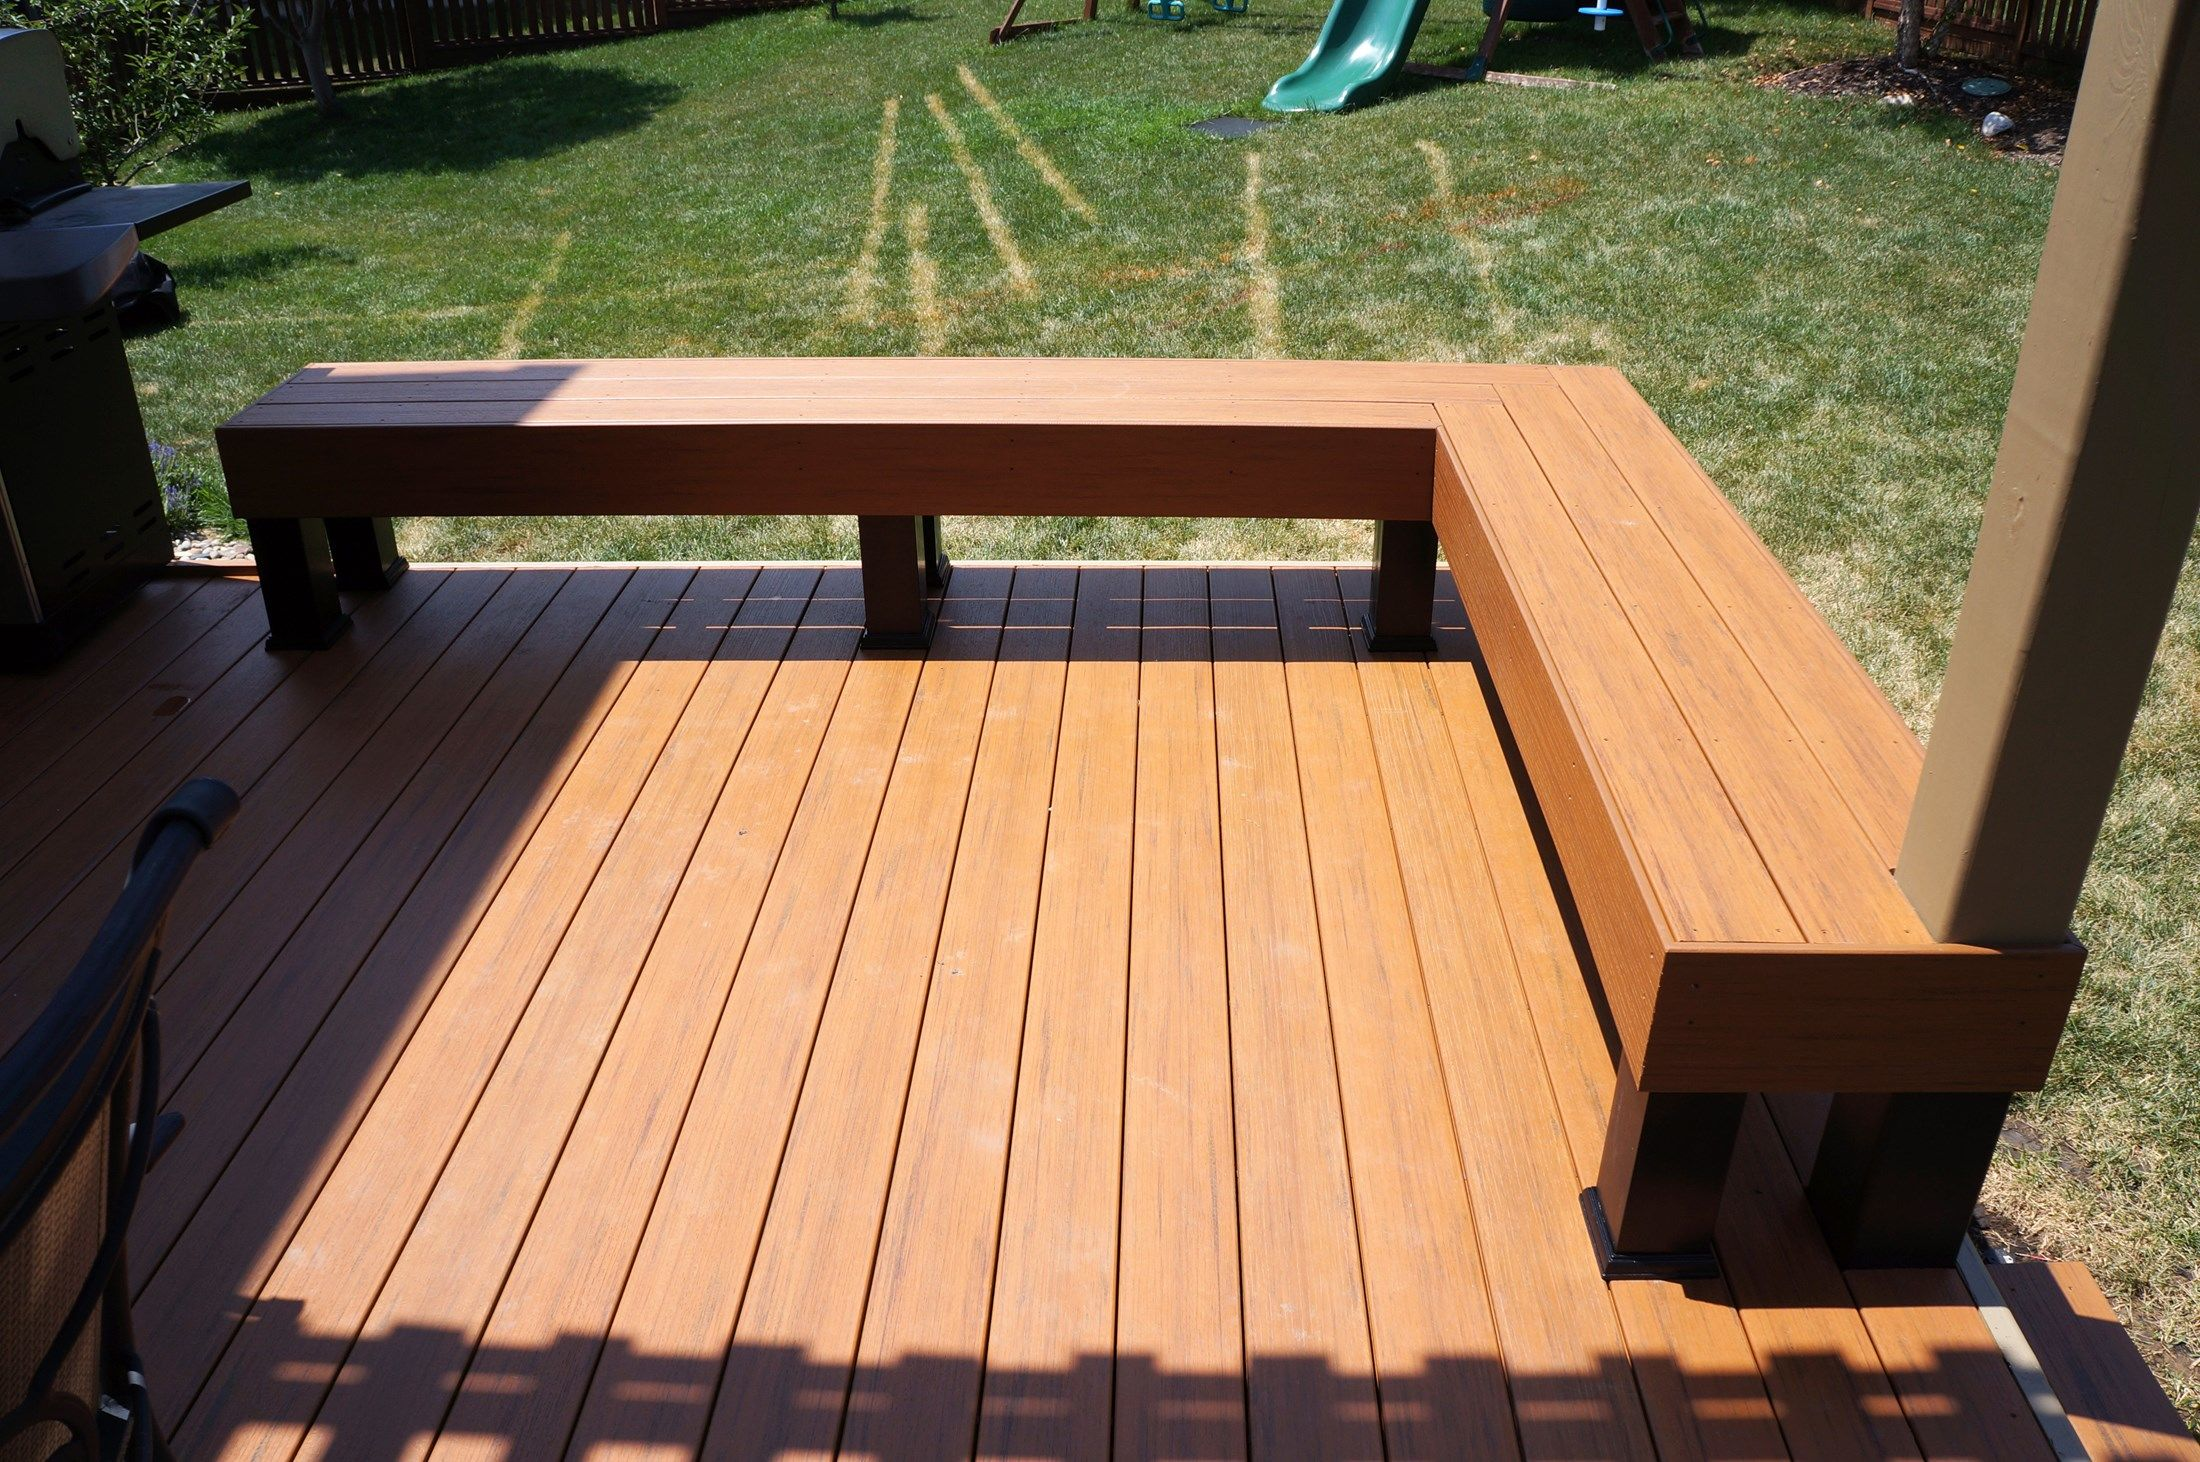 TimberTech Deck 2 - Picture 5161